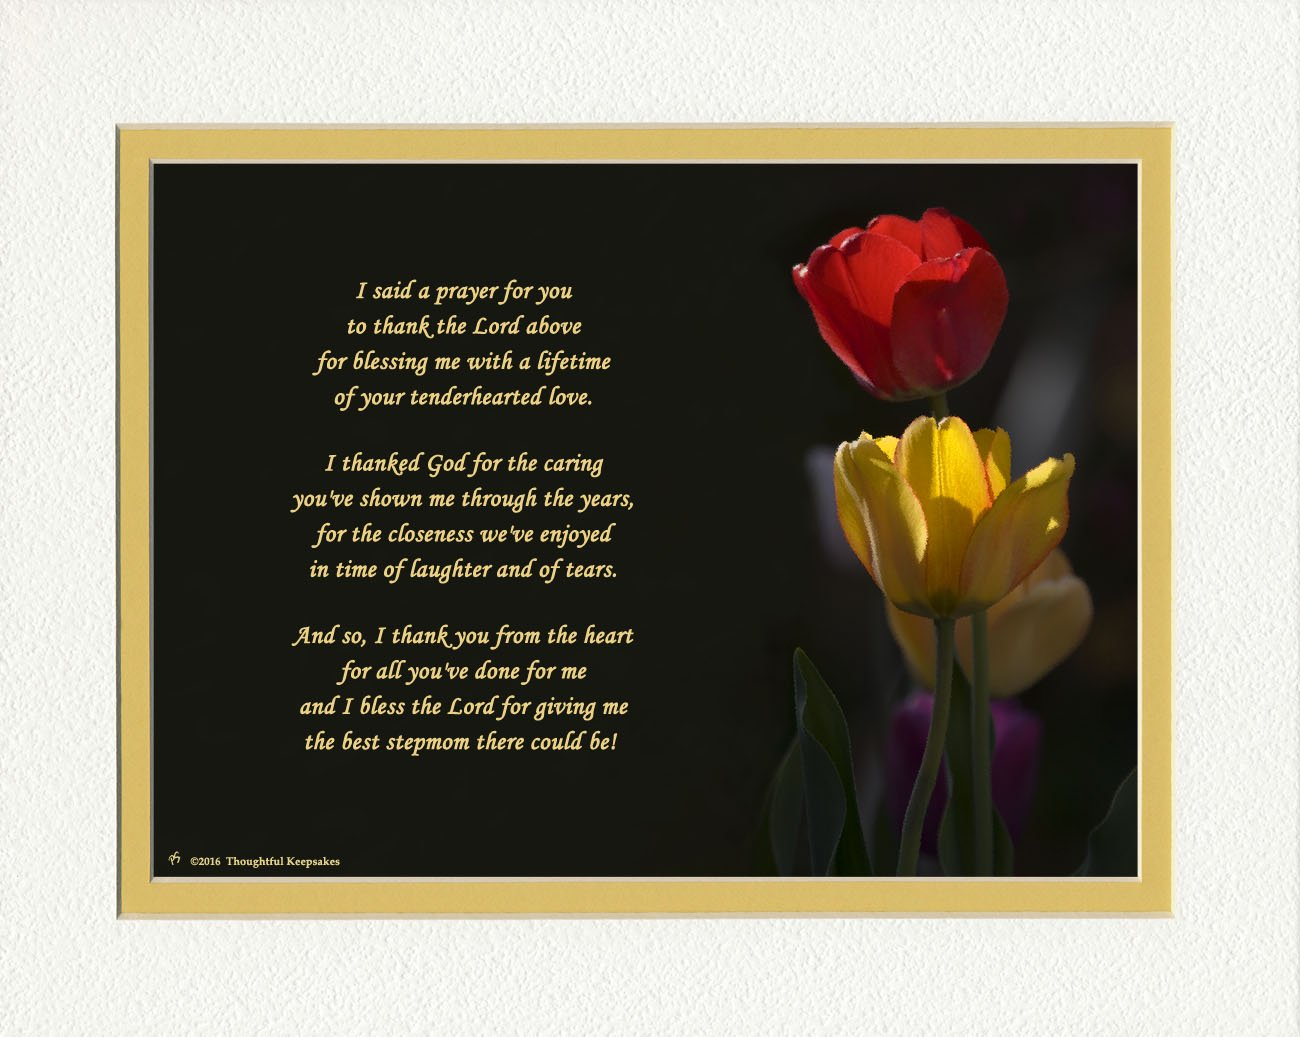 Stepmother Gift with ''Thank You Prayer for Best Stepmom'' Poem, Tulips Photo, 8x10 Double Matted. Special Stepmom Gifts for Christmas, Birthday, Thank Your or Mother's Day Gift.